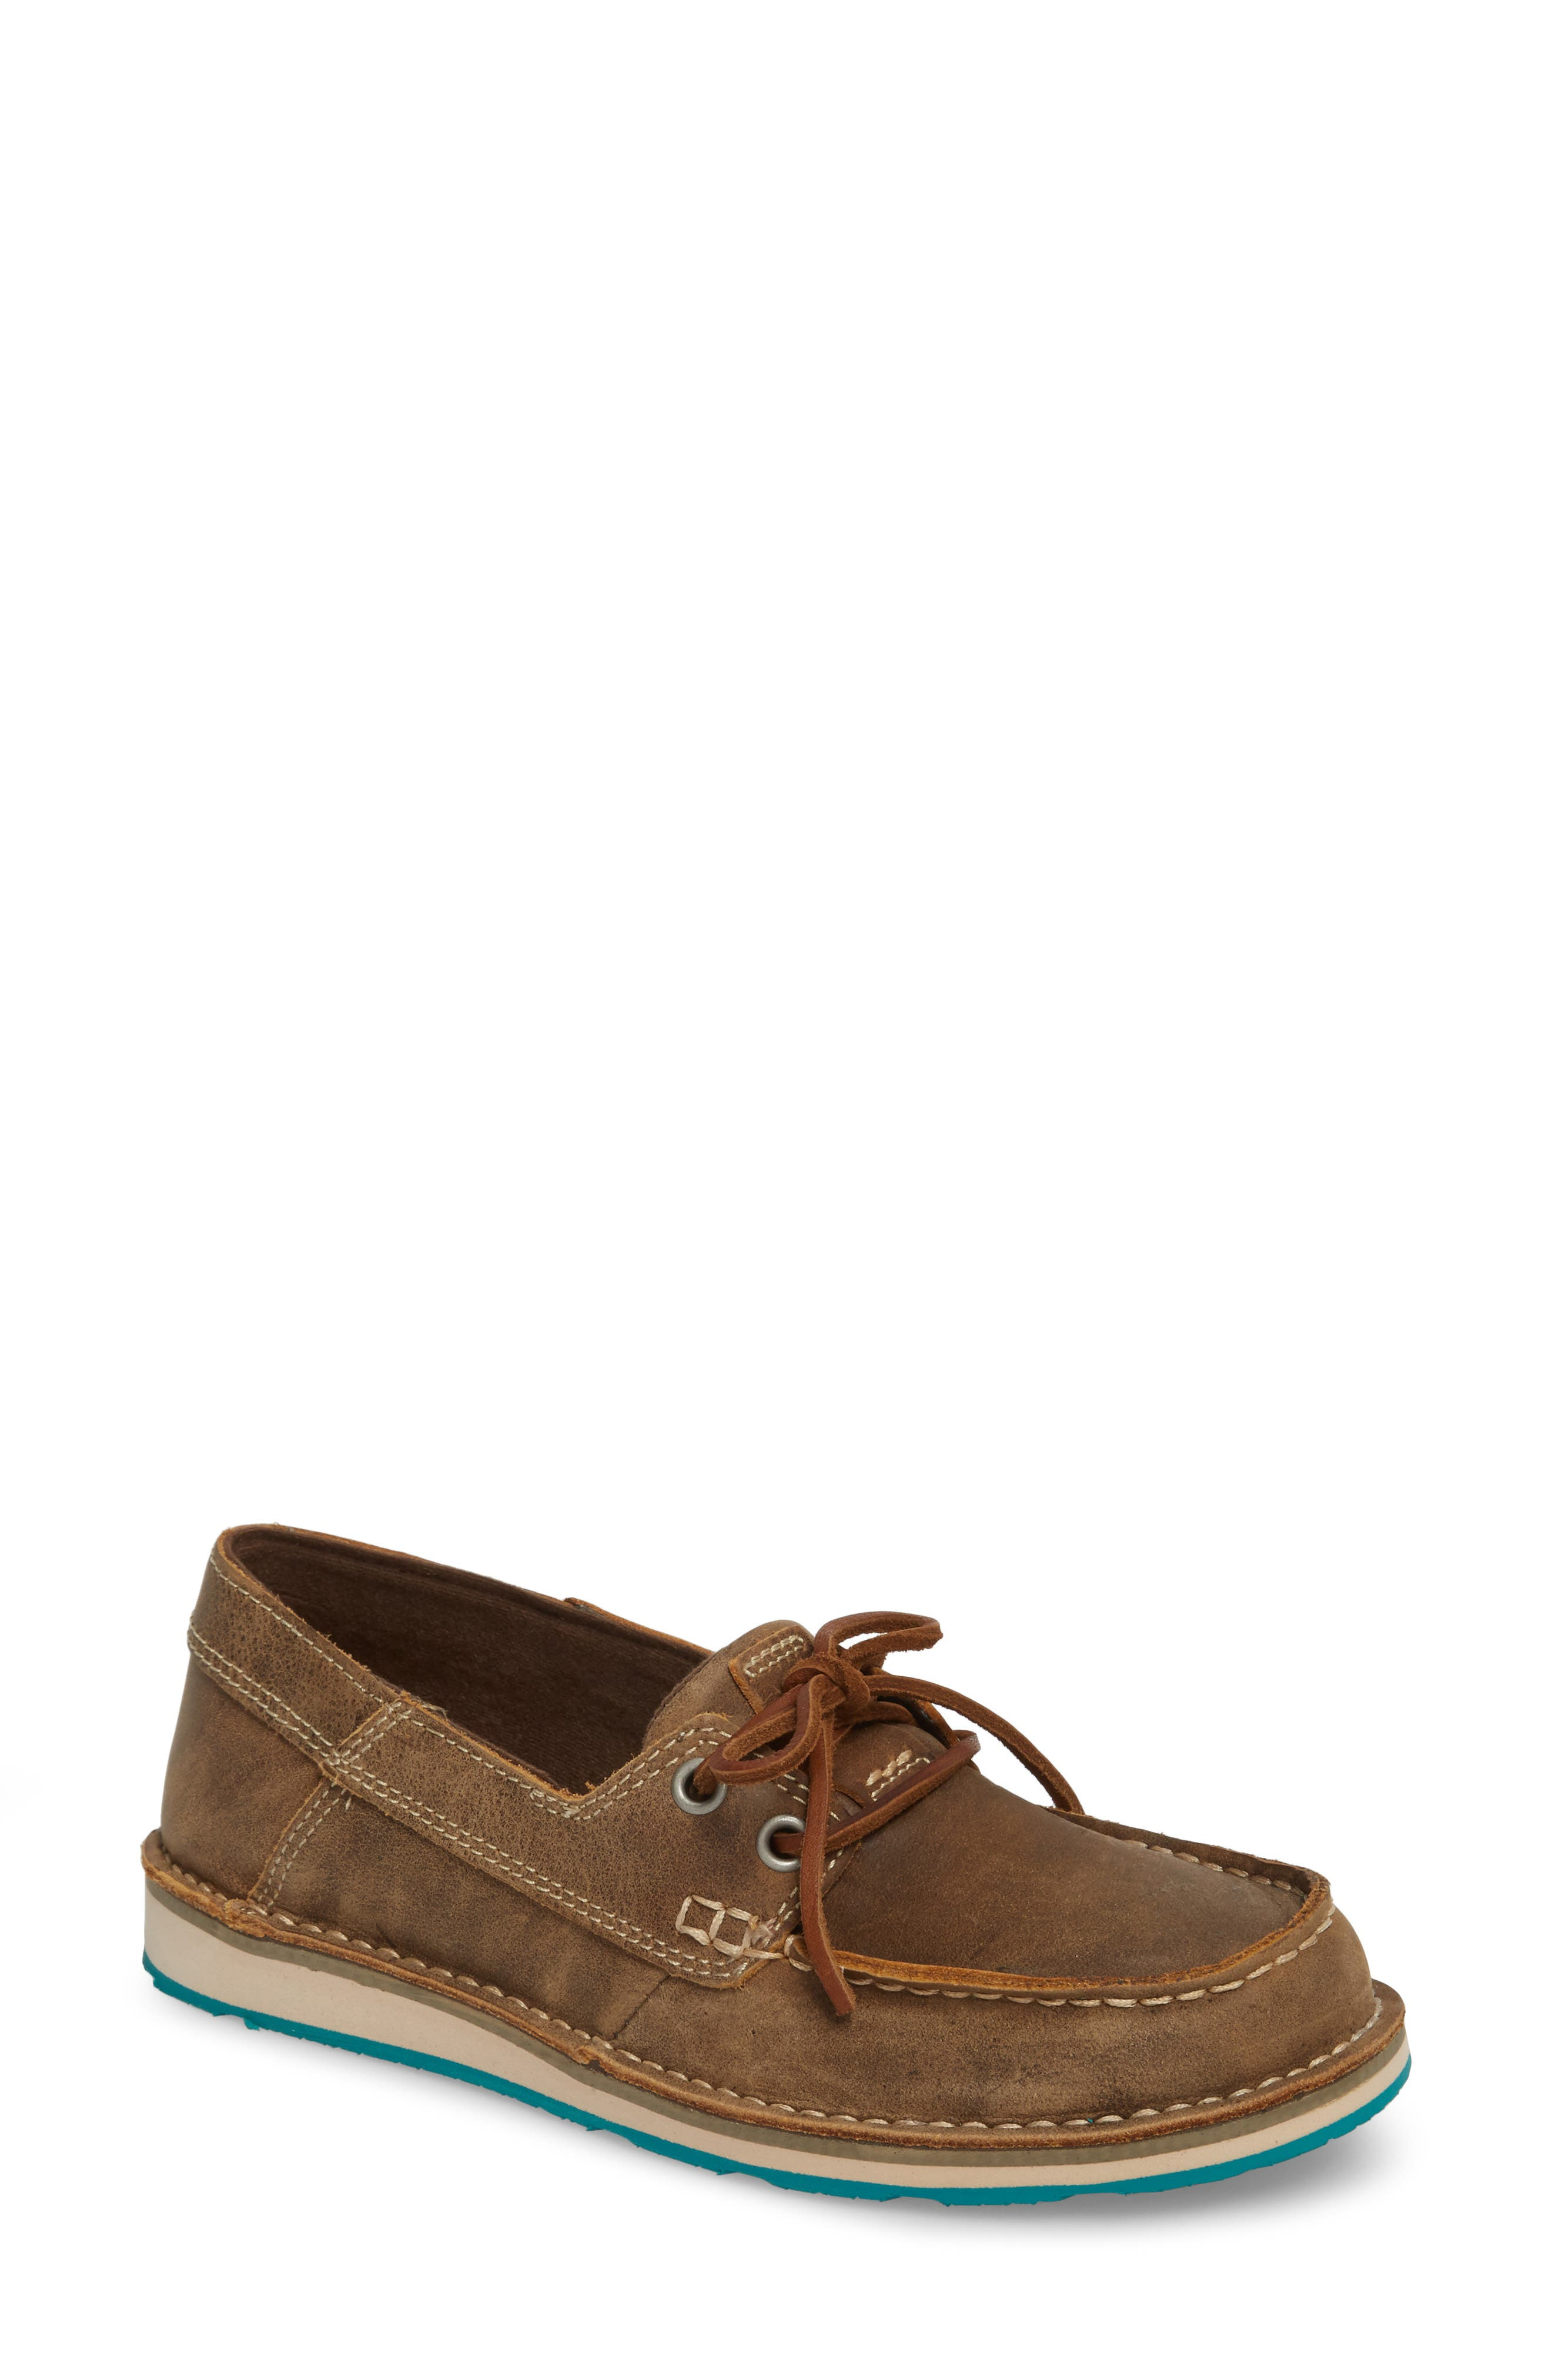 ARIAT,                             Cruiser Castaway Loafer,                             Main thumbnail 1, color,                             BROWN BOMBER LEATHER